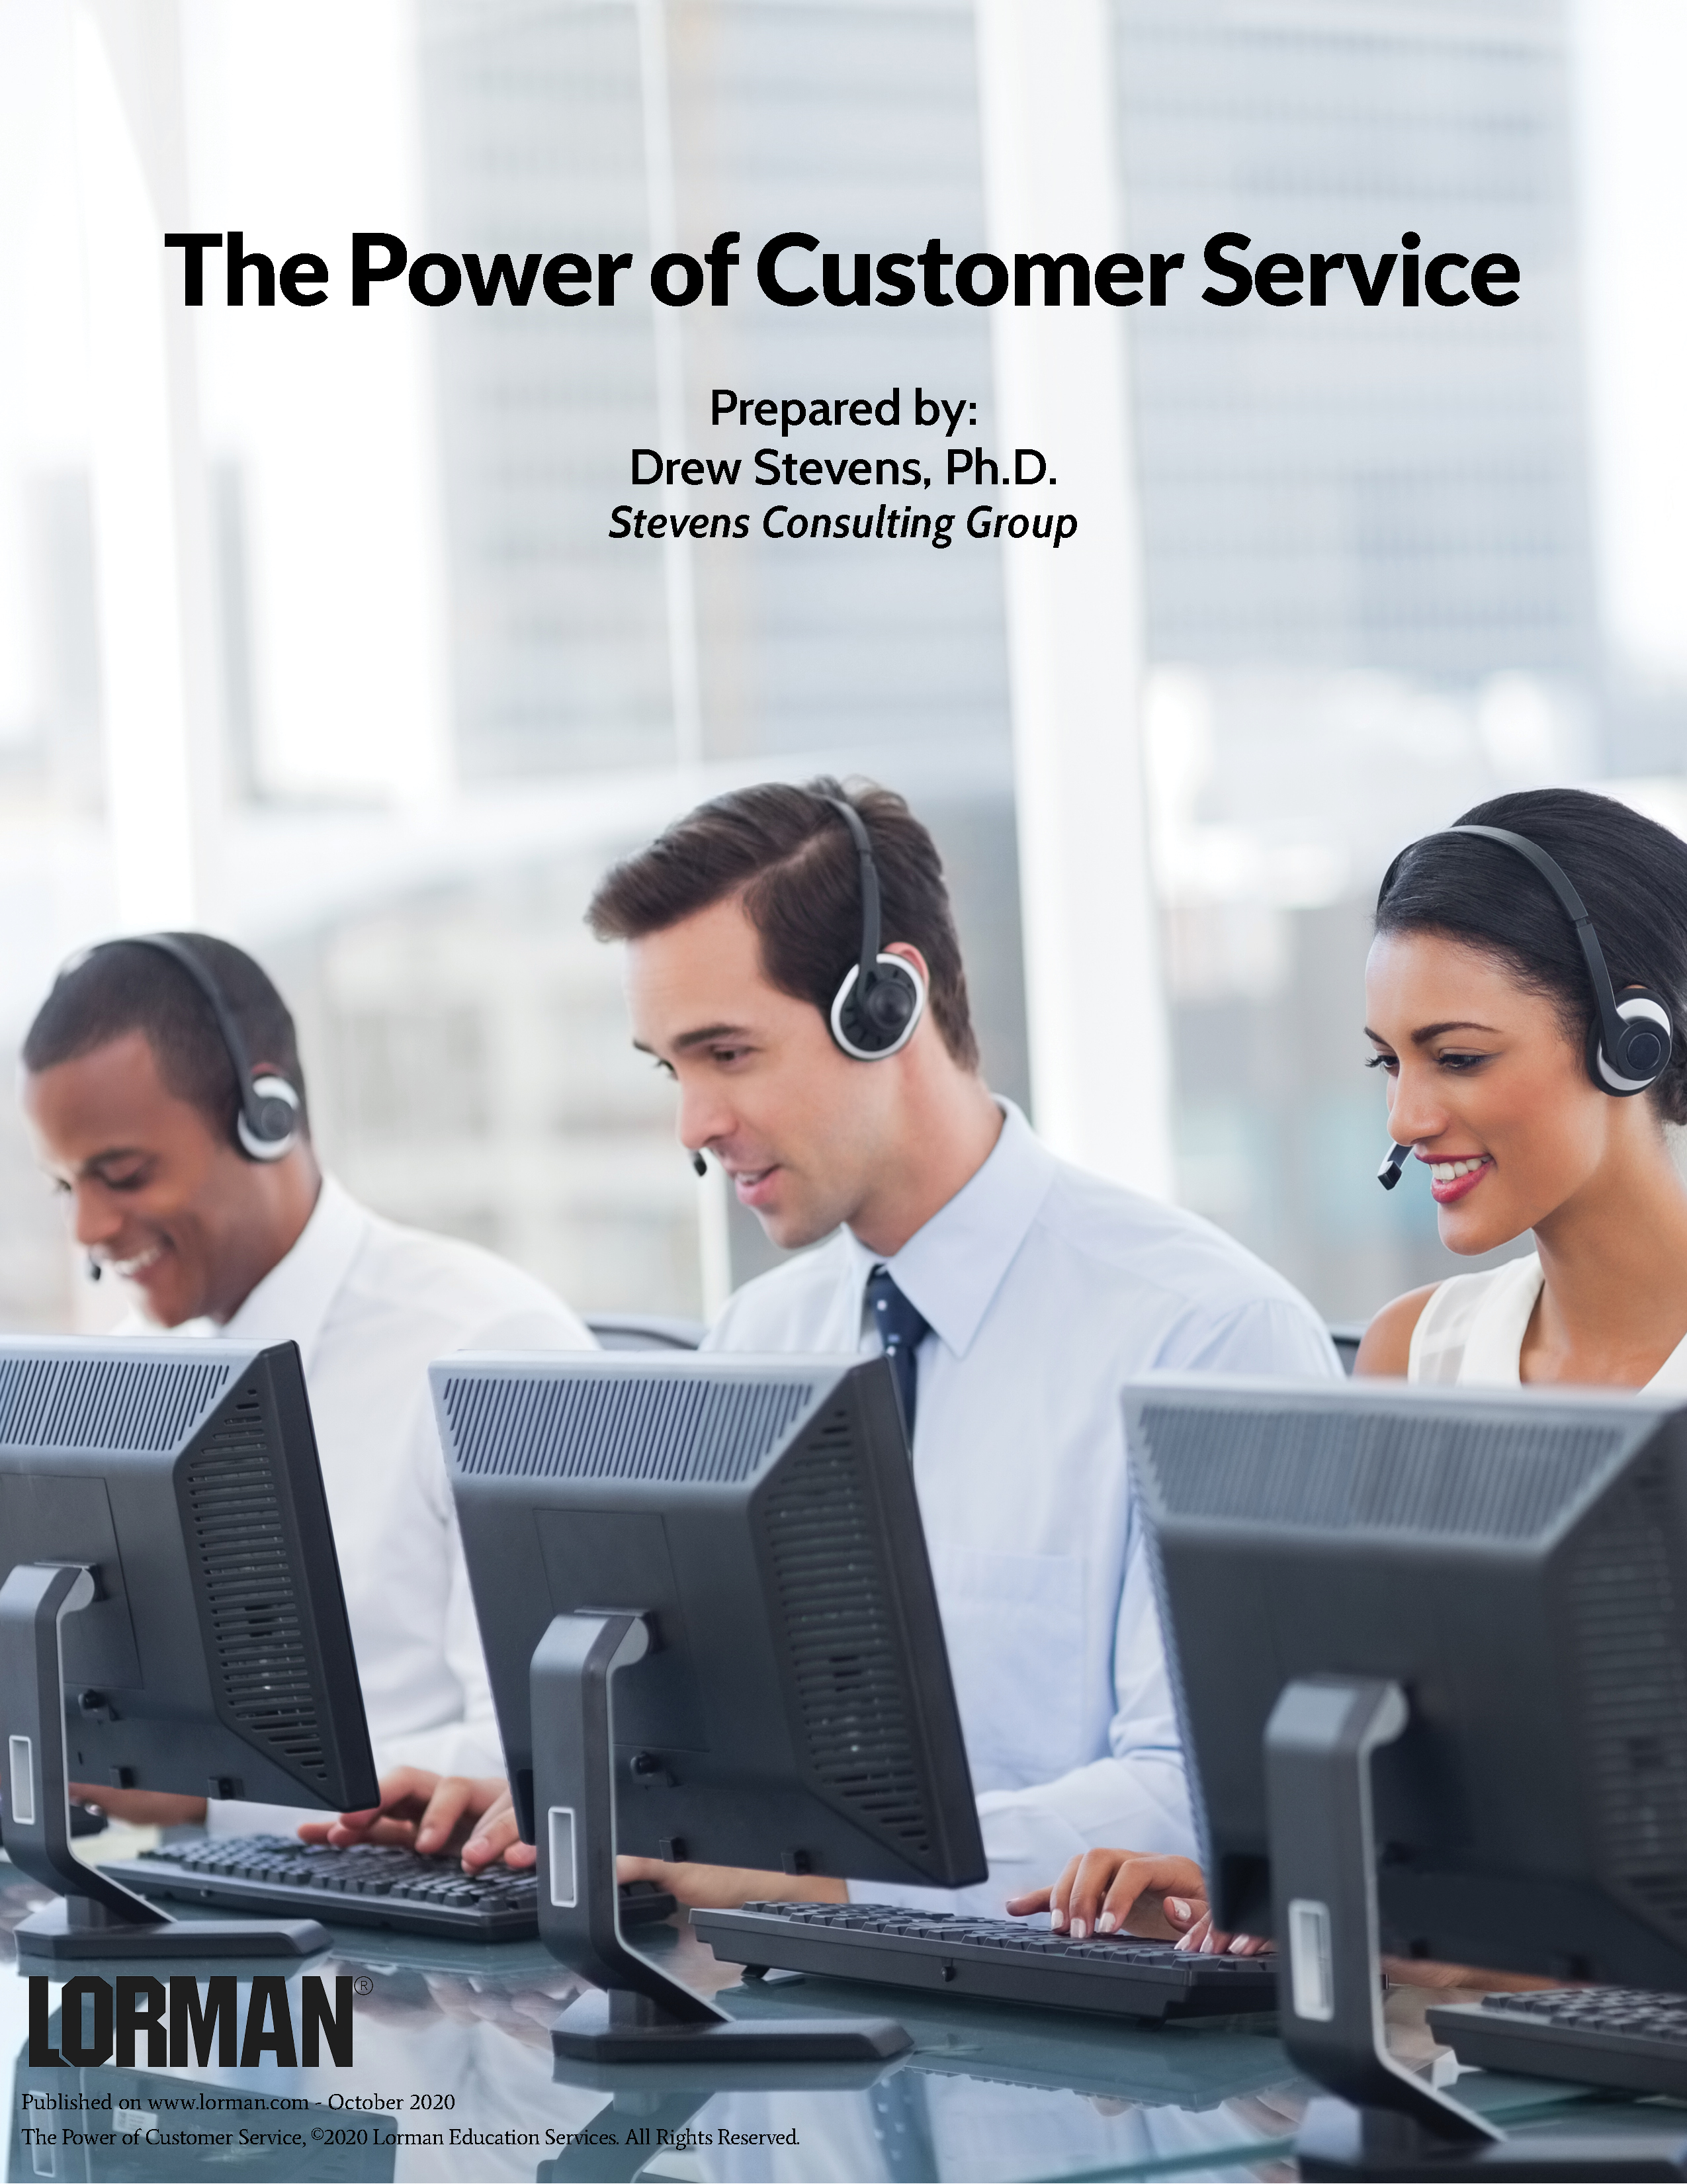 The Power of Customer Service